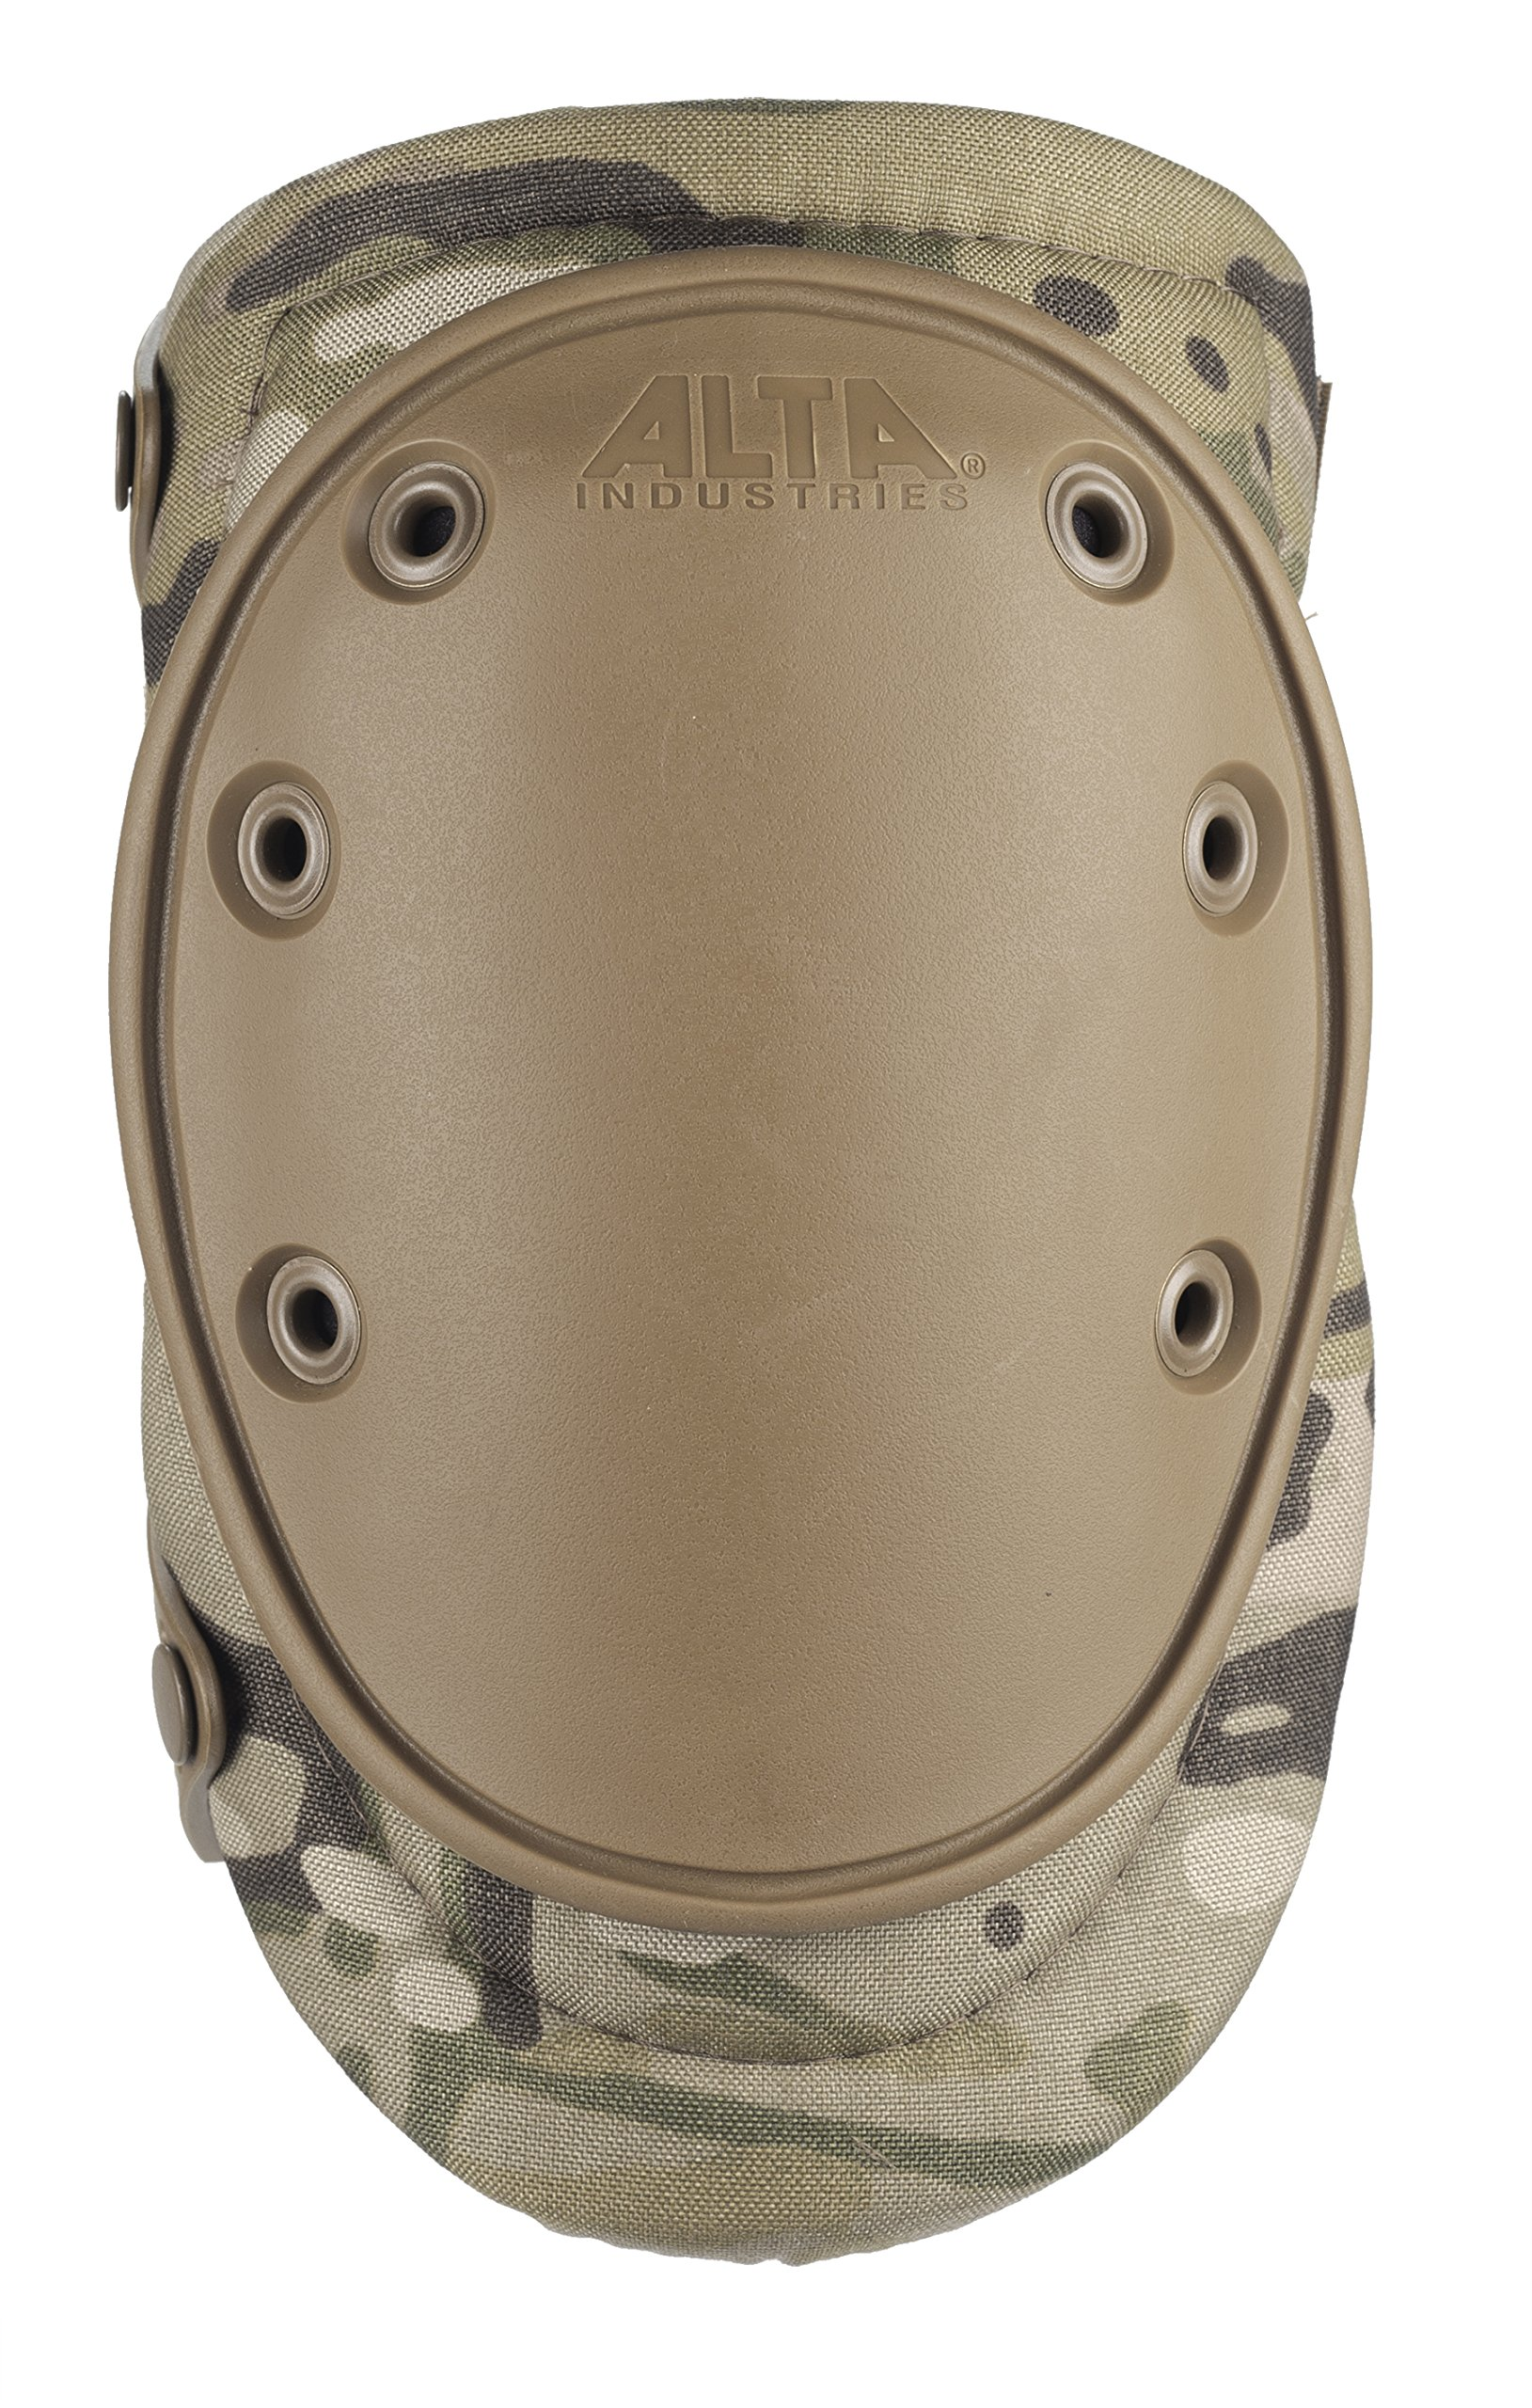 ALTA 50453.16 AltaFLEX Gel Insert Heavy Duty Knee Protector Pad, MultiCAM Cordura Nylon Fabric, AltaLOK Fastening, Flexible Cap, Long, Coyote